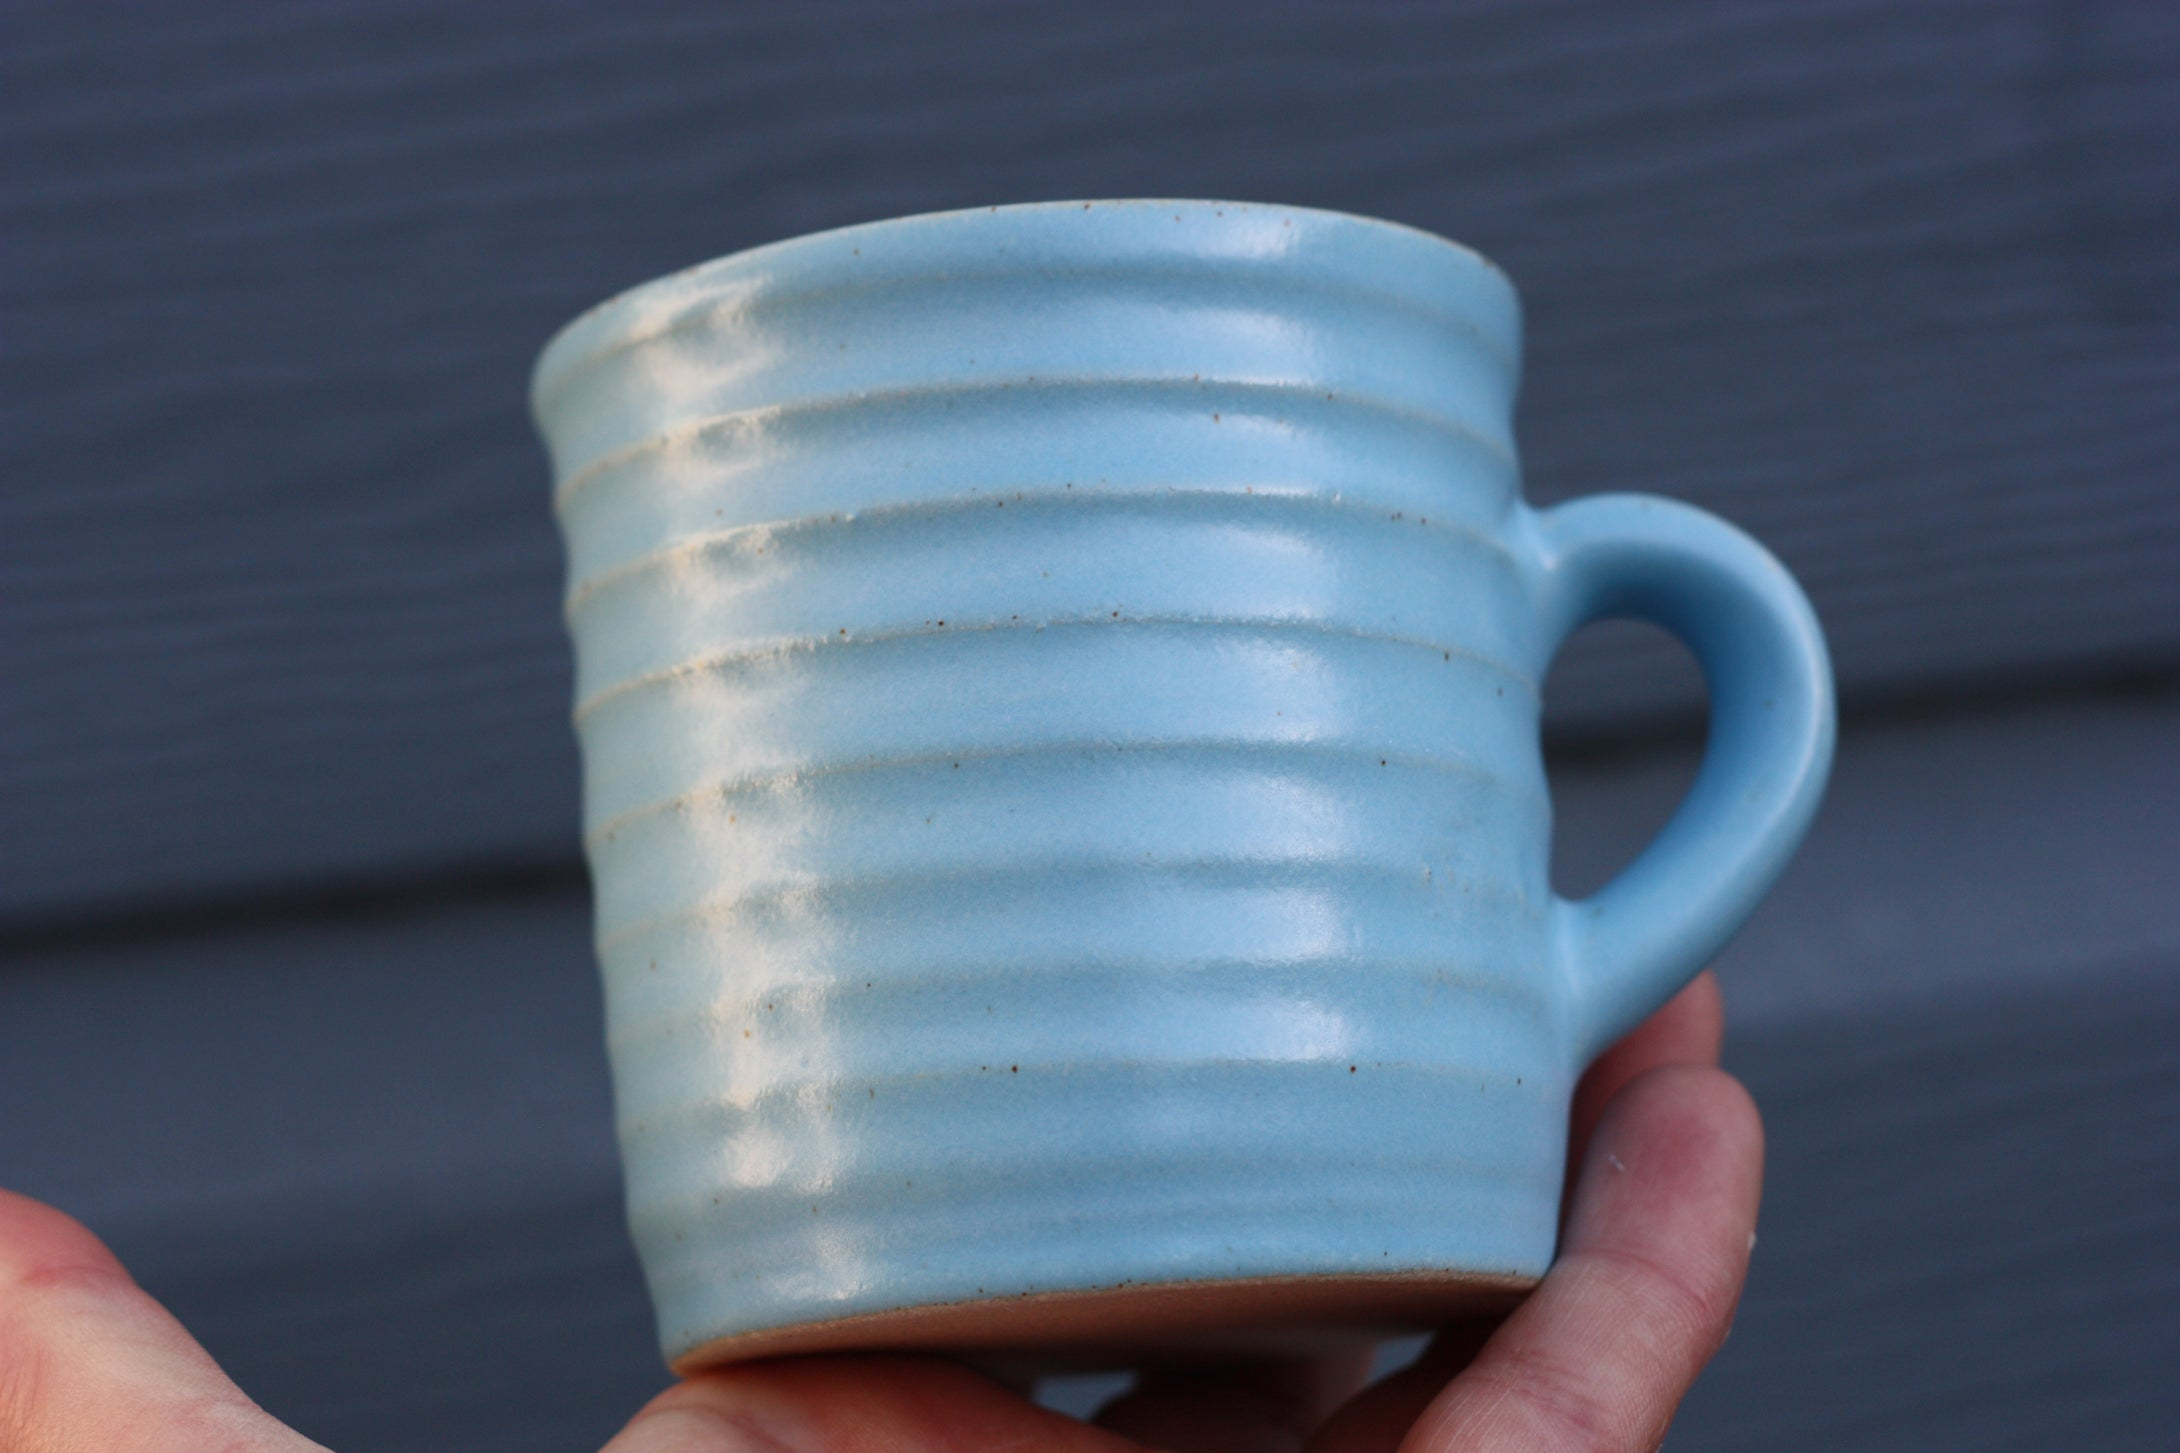 Small Mug 250ml 8 oz in Turquoise glaze handmade pottery ceramic cup beaker